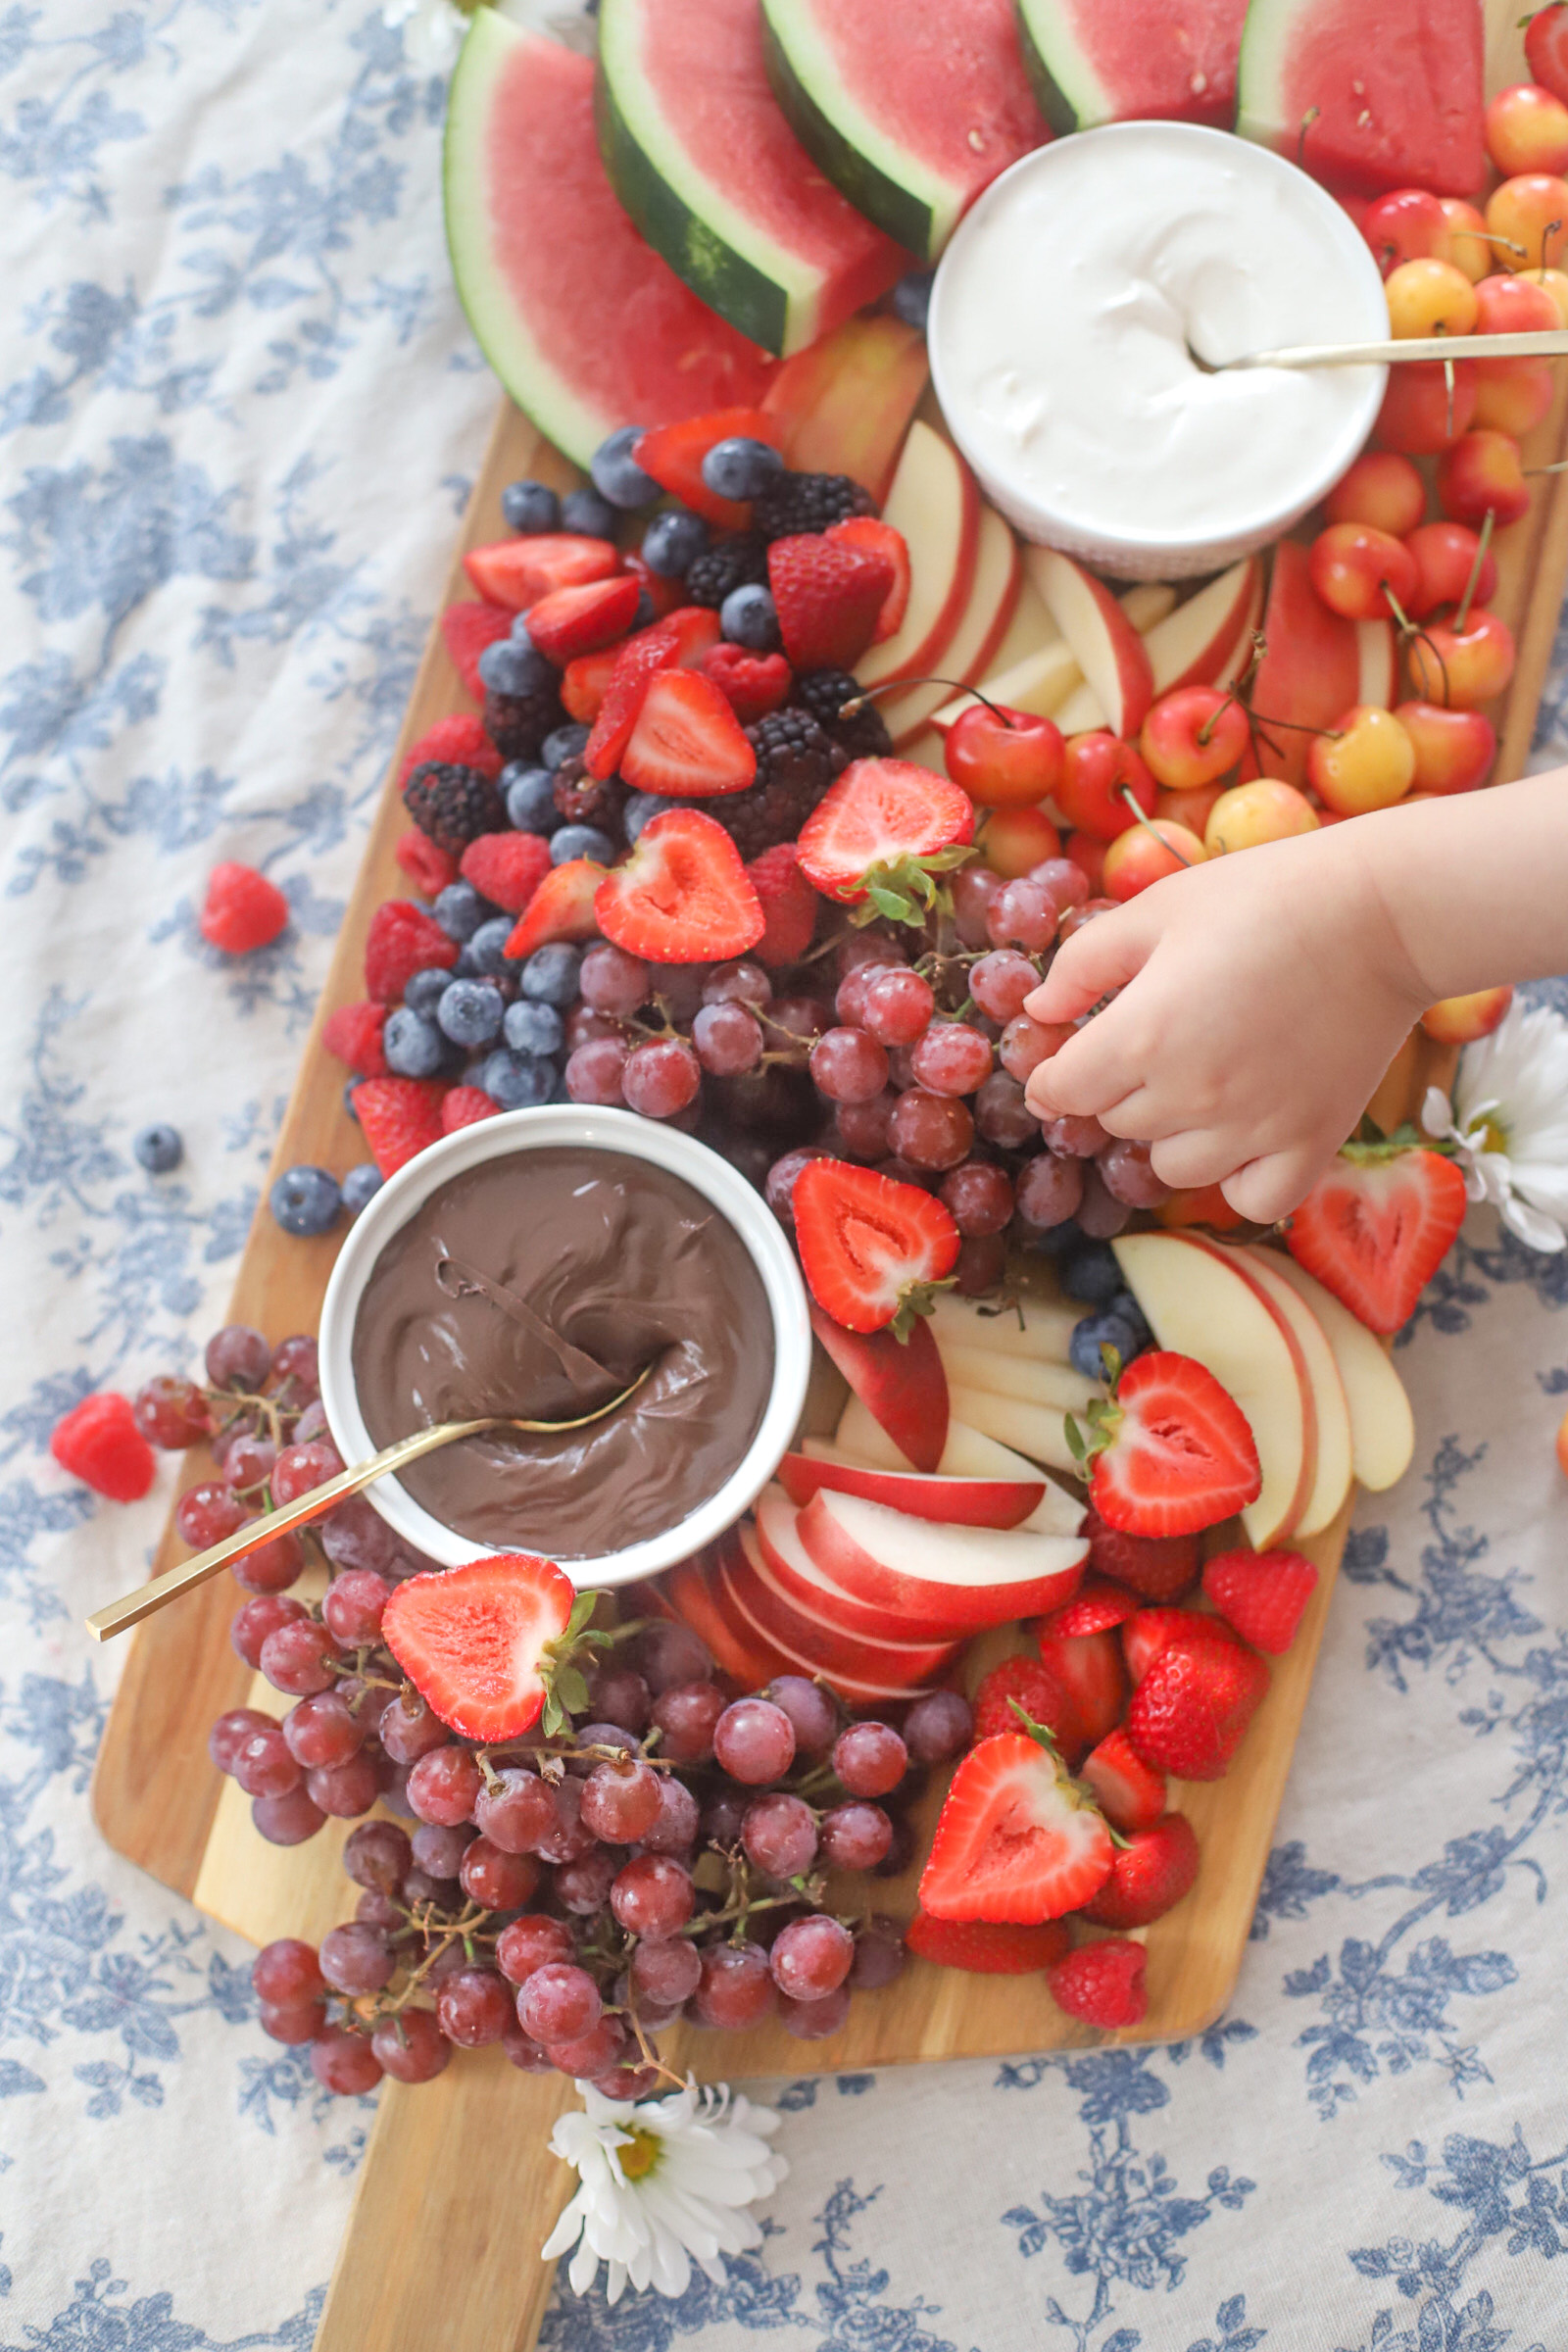 wooden board with fruits and dip